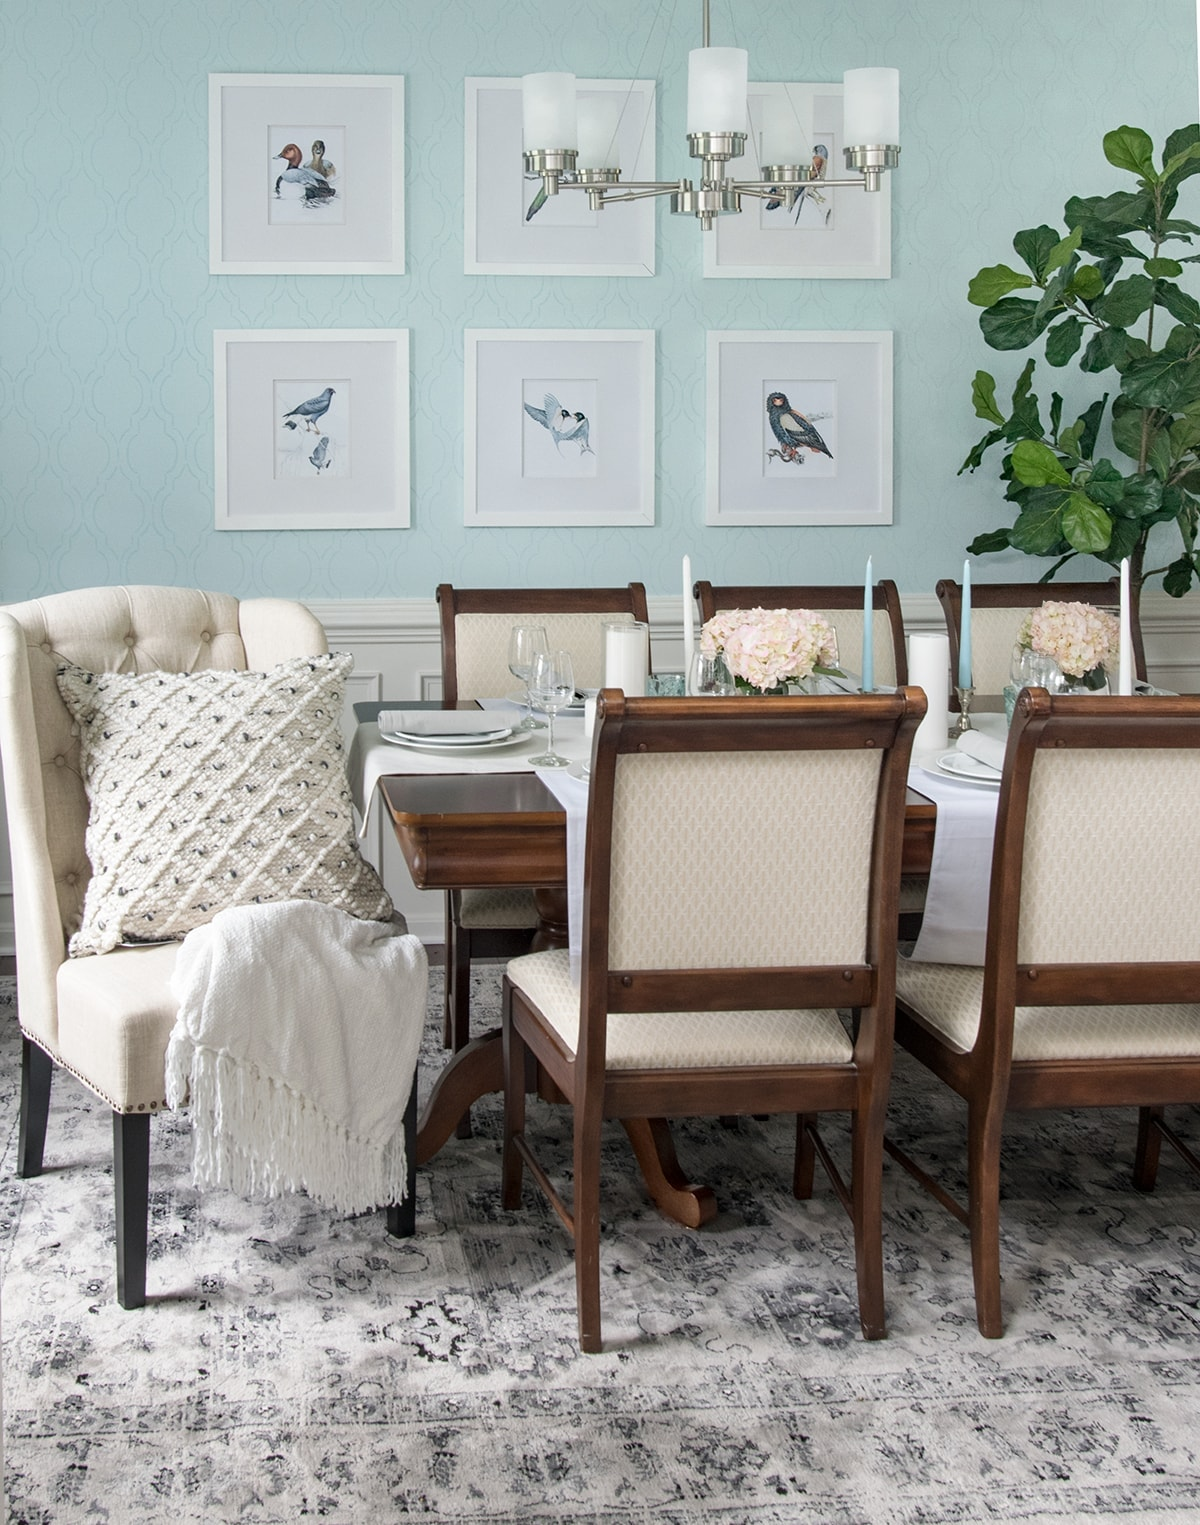 Classic chic dining room with area rug, natural accents, gray curtains, black lanterns, and soft blue walls.